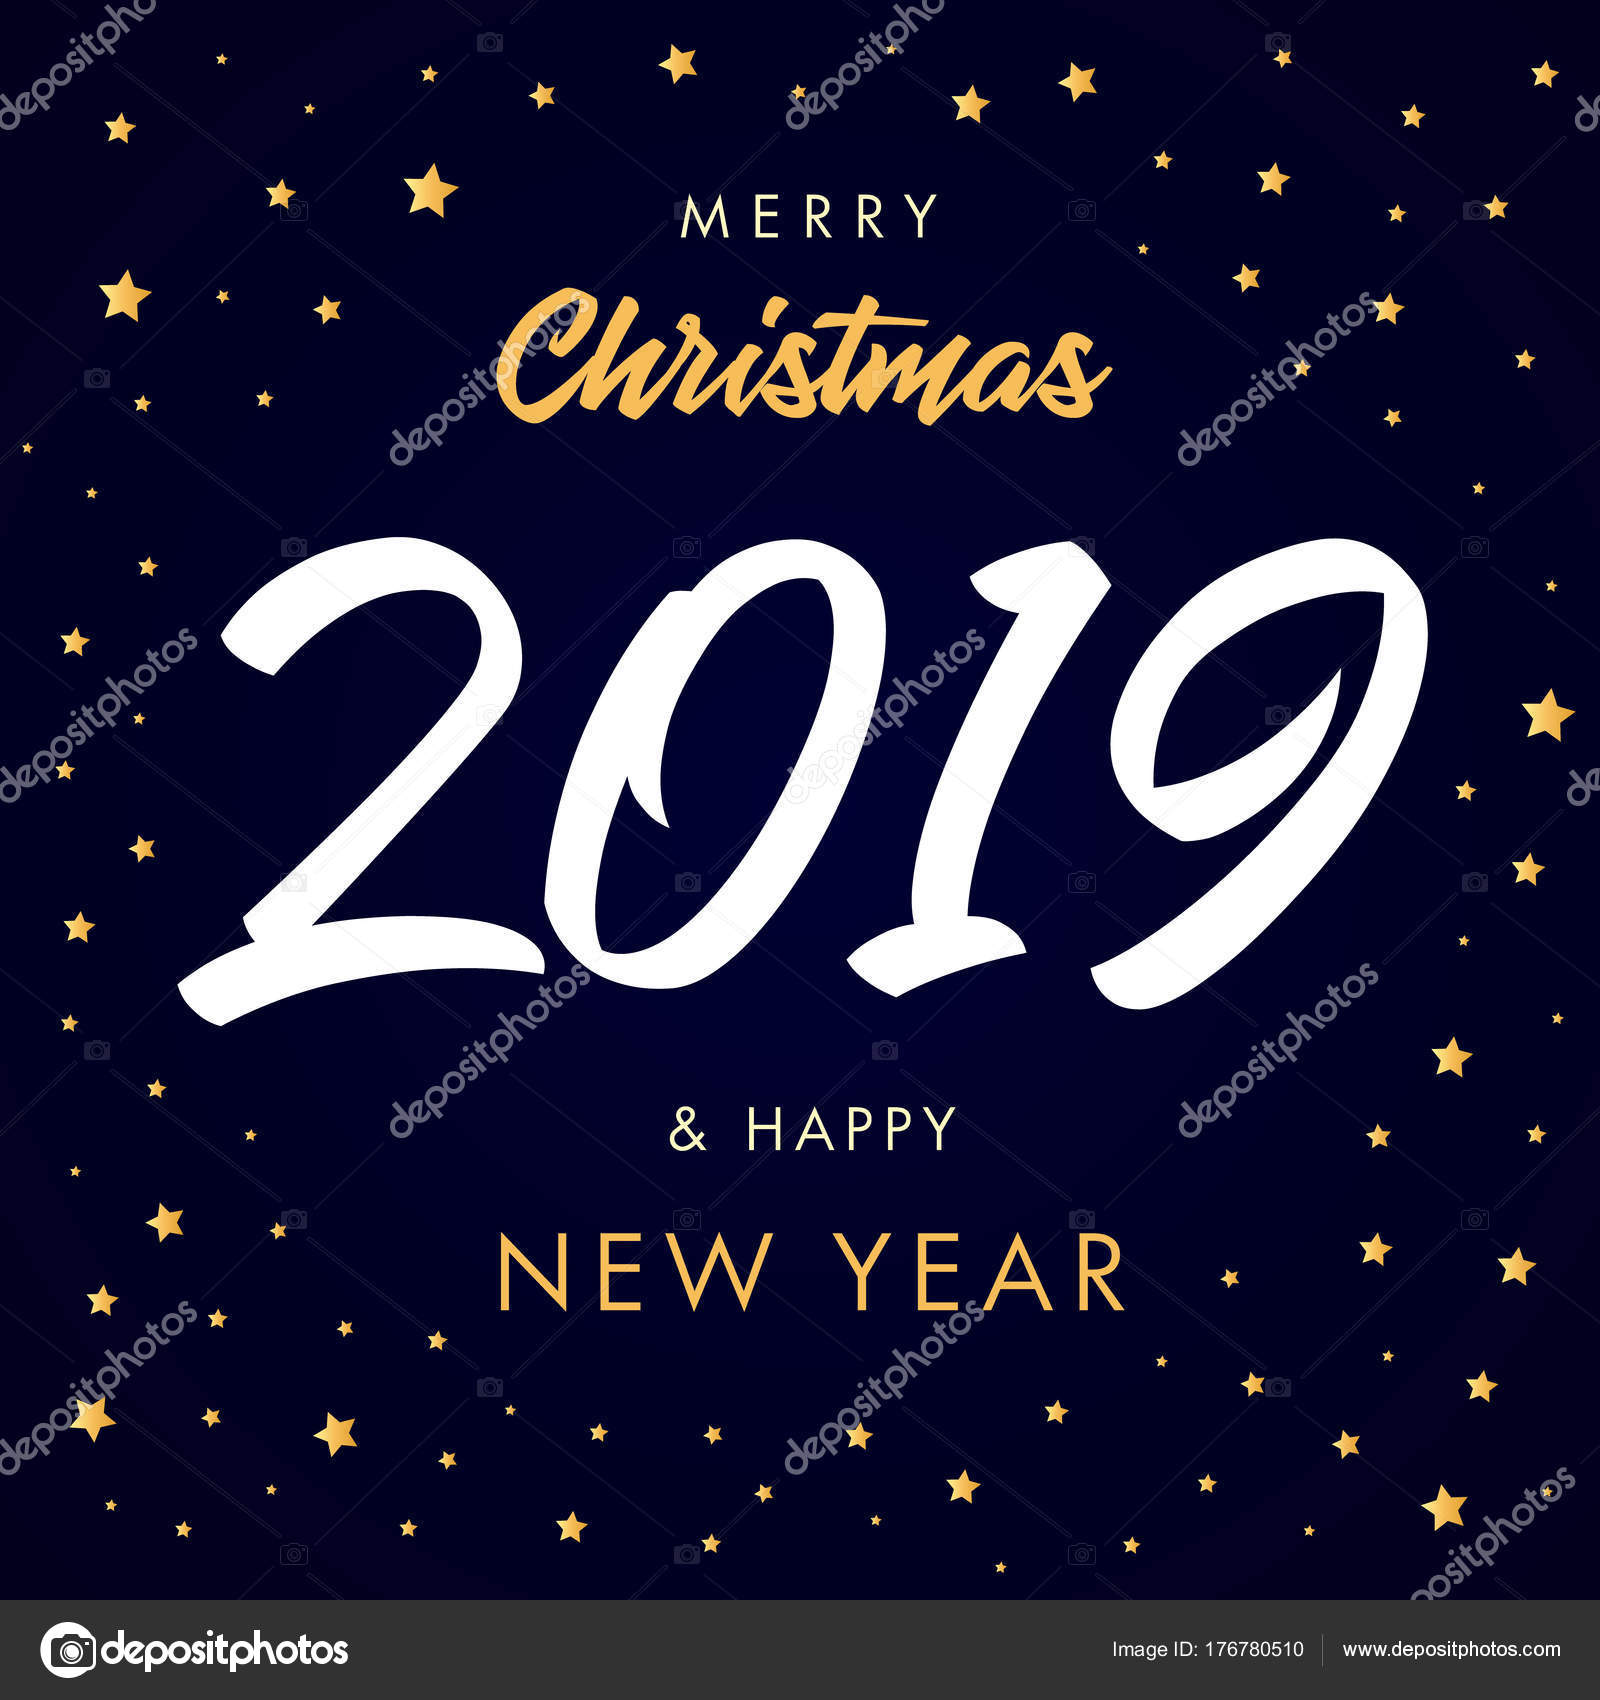 Merry Christmas Calligraphy 2019 Happy New Year Greeting Card Vector